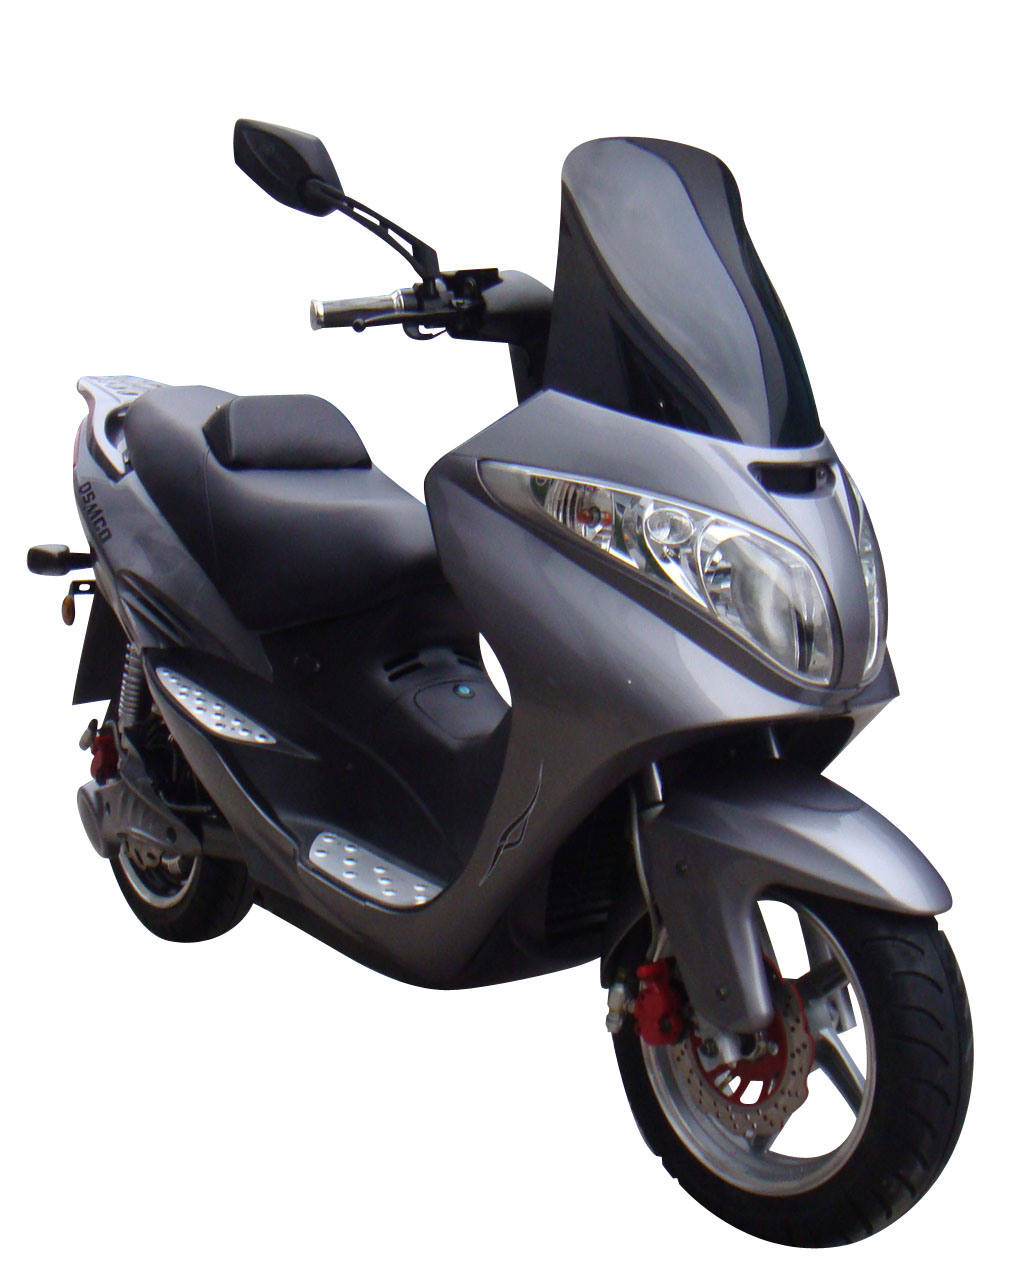 Adult Scooters - Electric, Powerwing, Razor